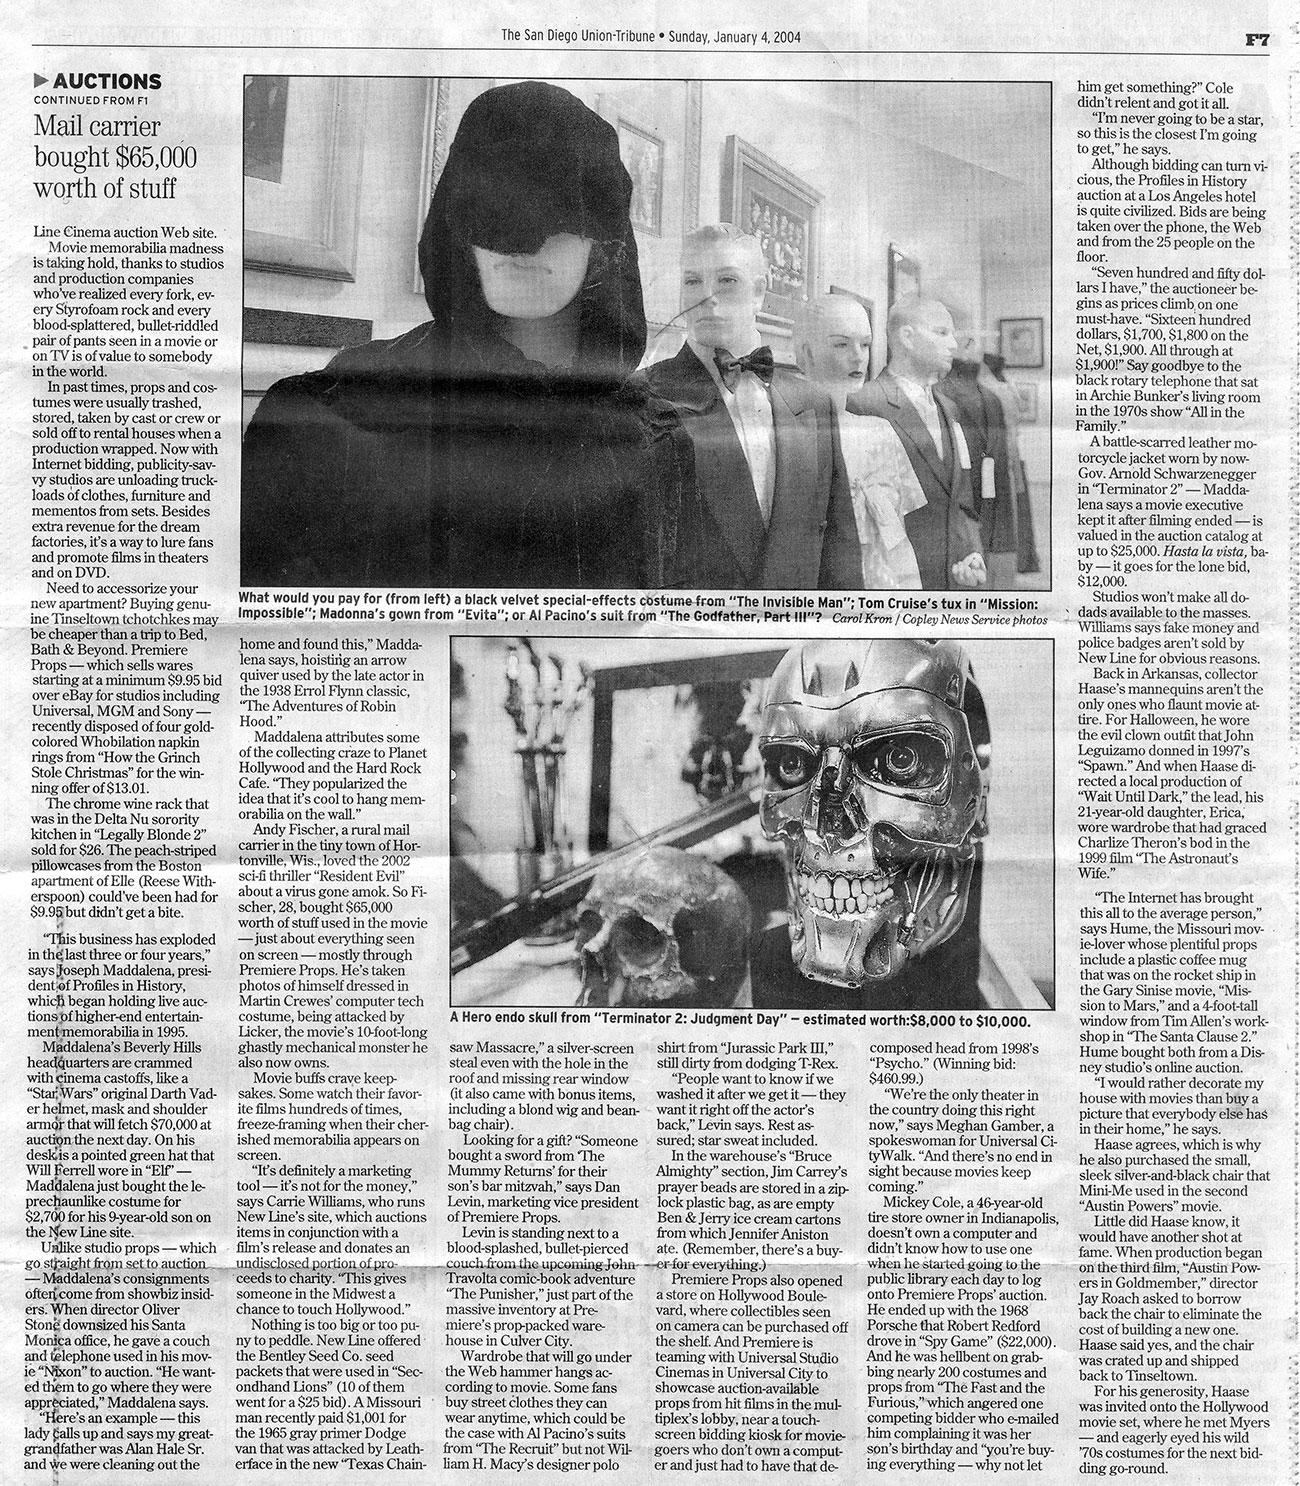 the san diego tribune newspaper article with black and white photo of terminator two robot